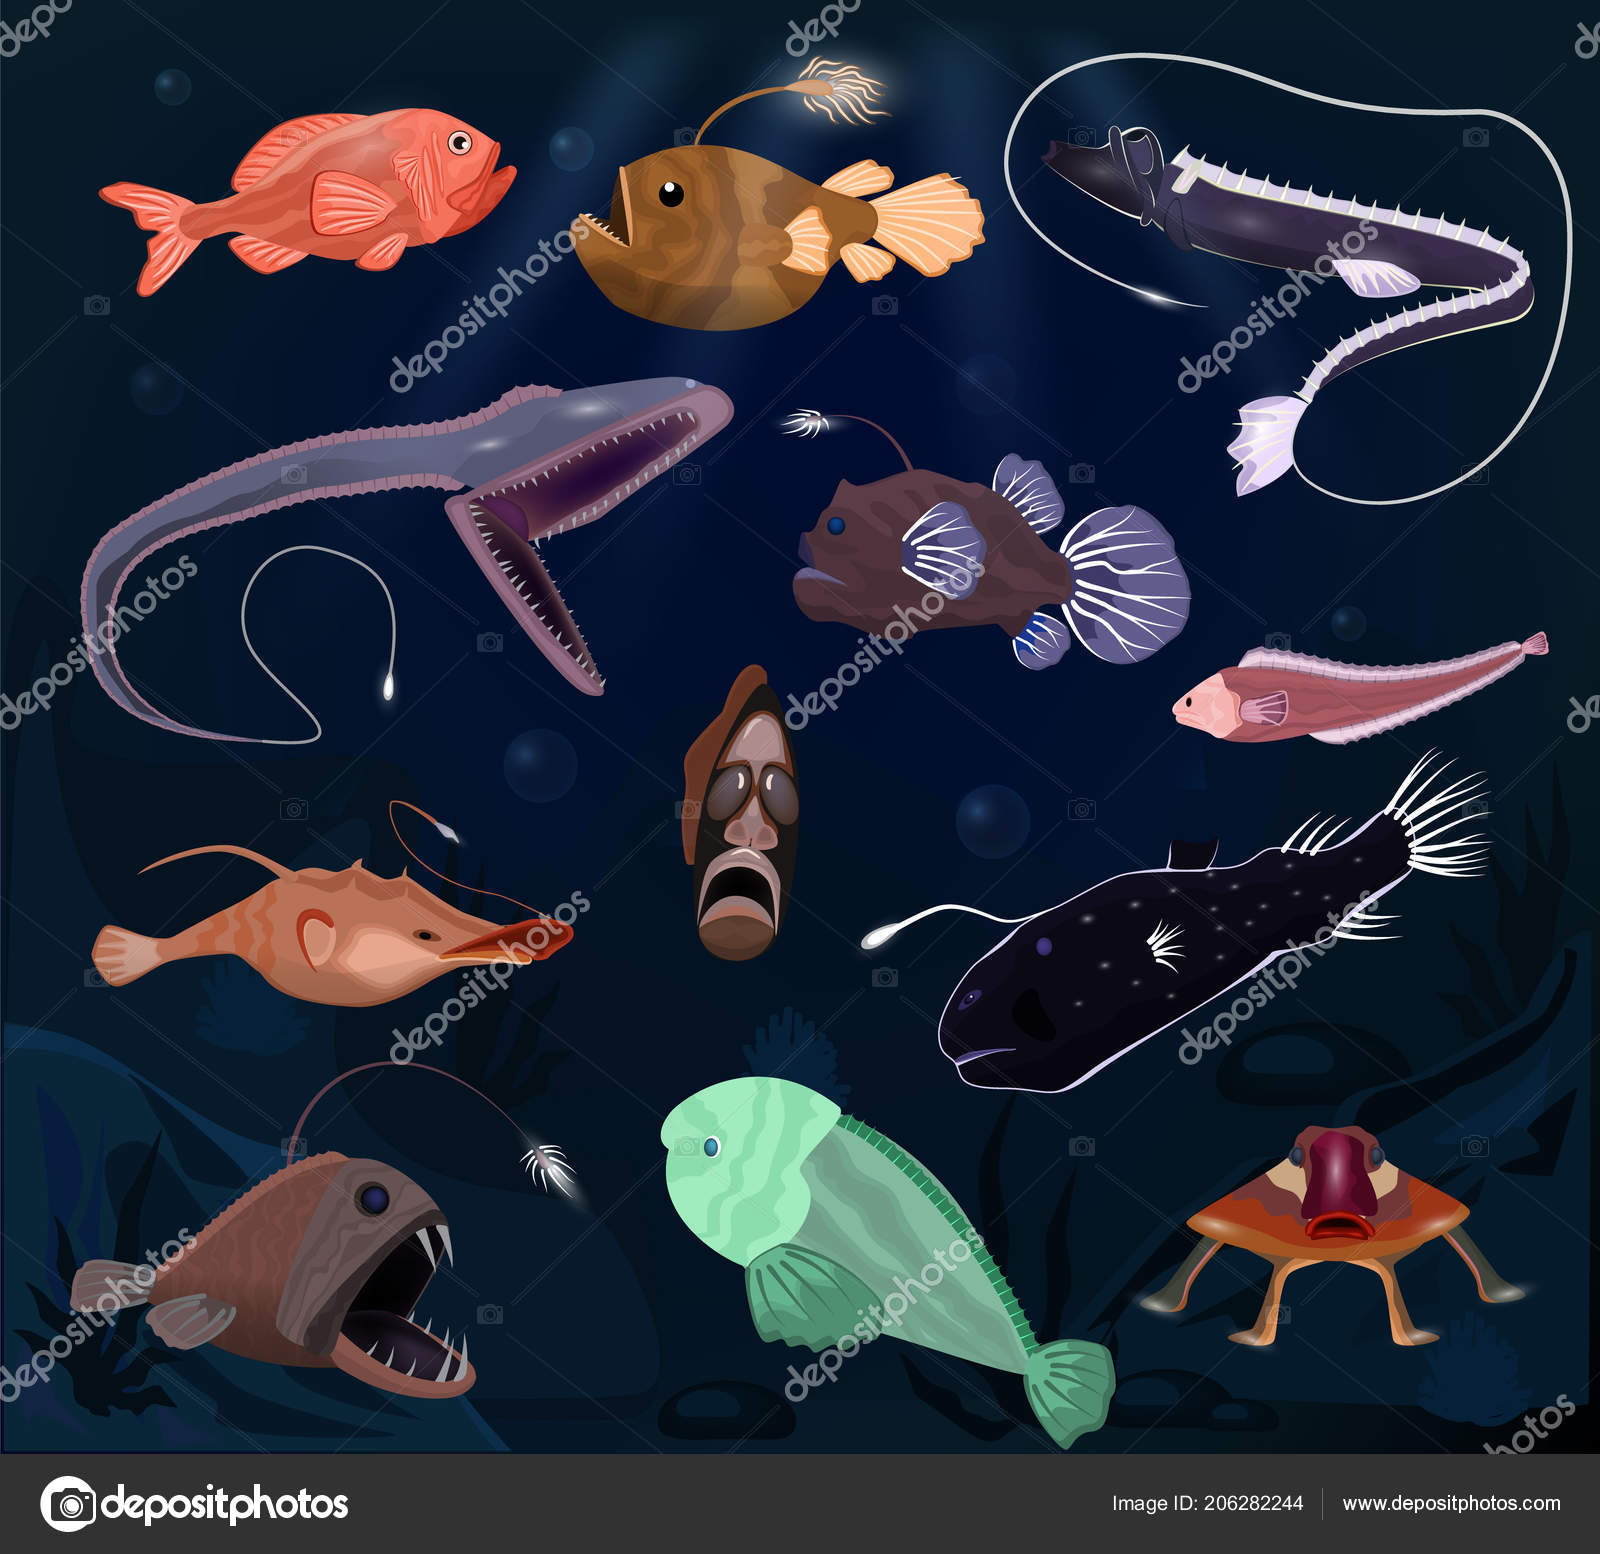 Angler fishes